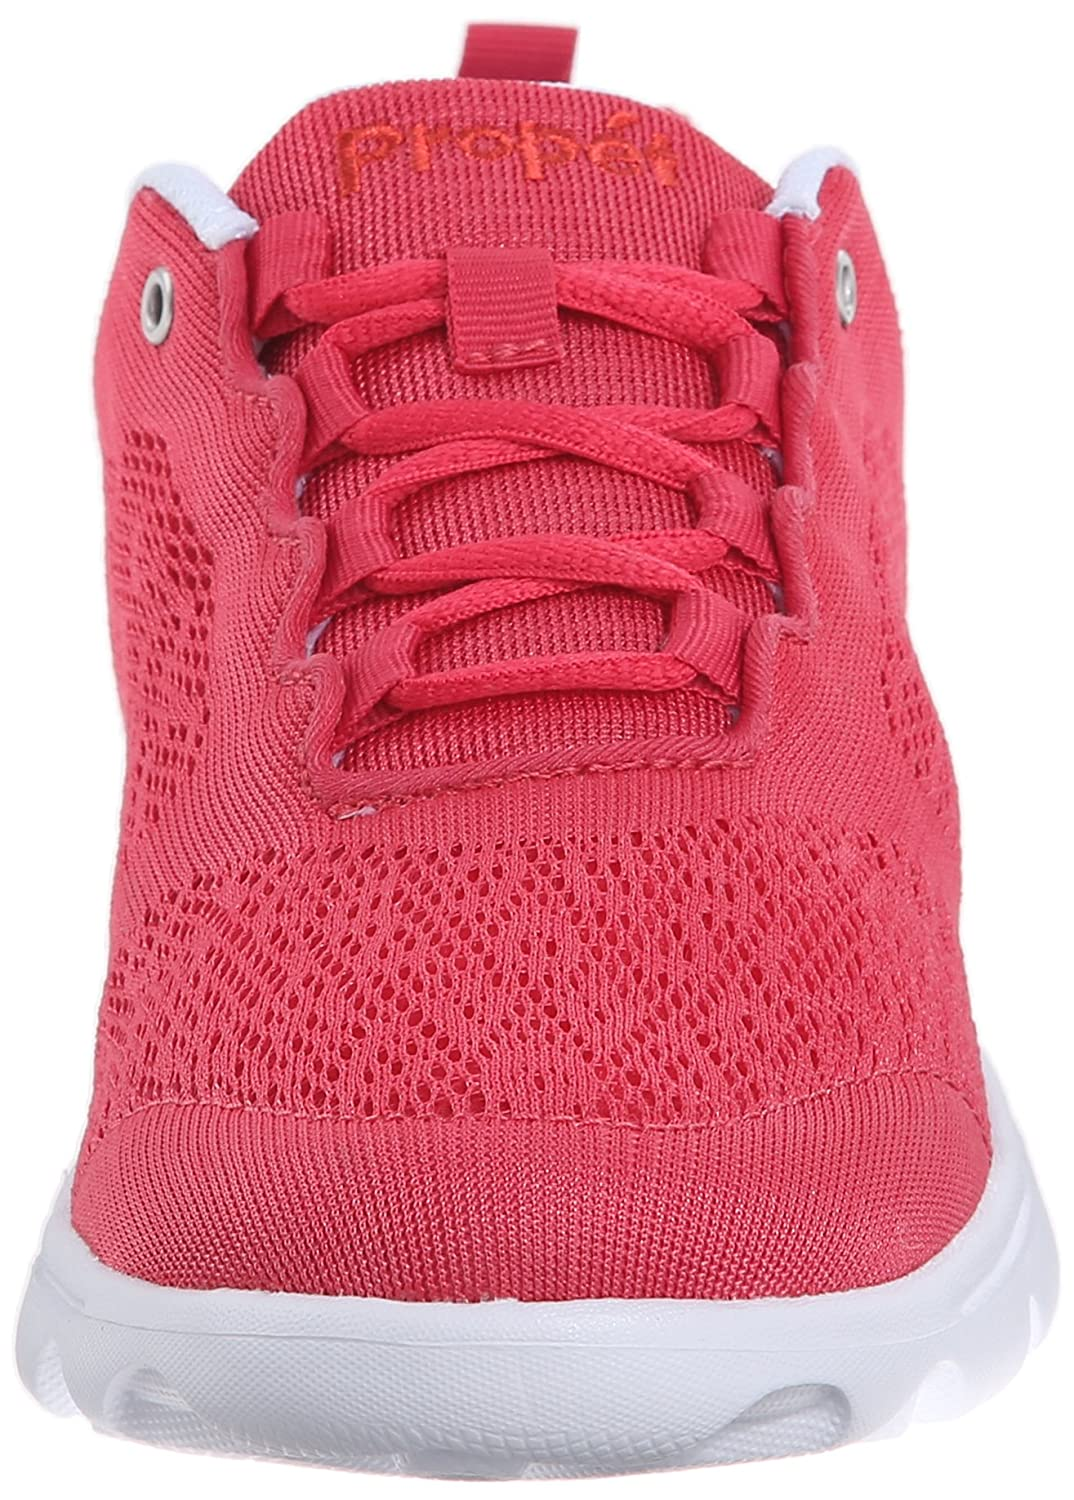 Propet Women's TravelActiv Fashion Sneaker B0118FFNMU 7.5 N US|Watermelon Red